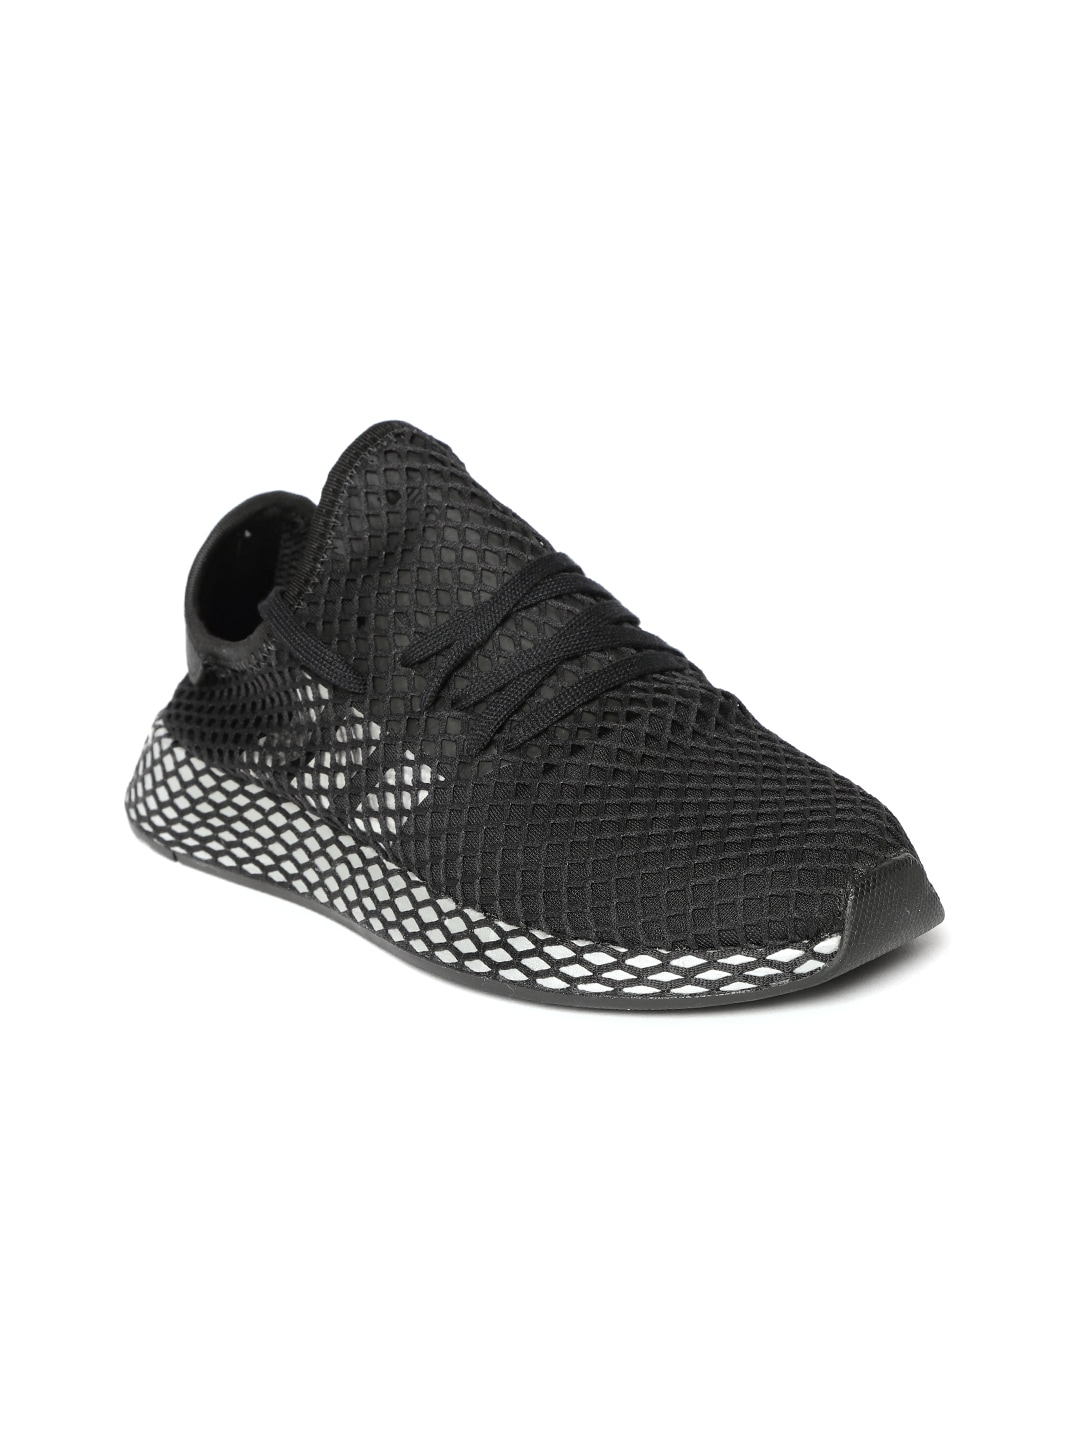 d1ca6a1c3 Women s Adidas Shoes - Buy Adidas Shoes for Women Online in India